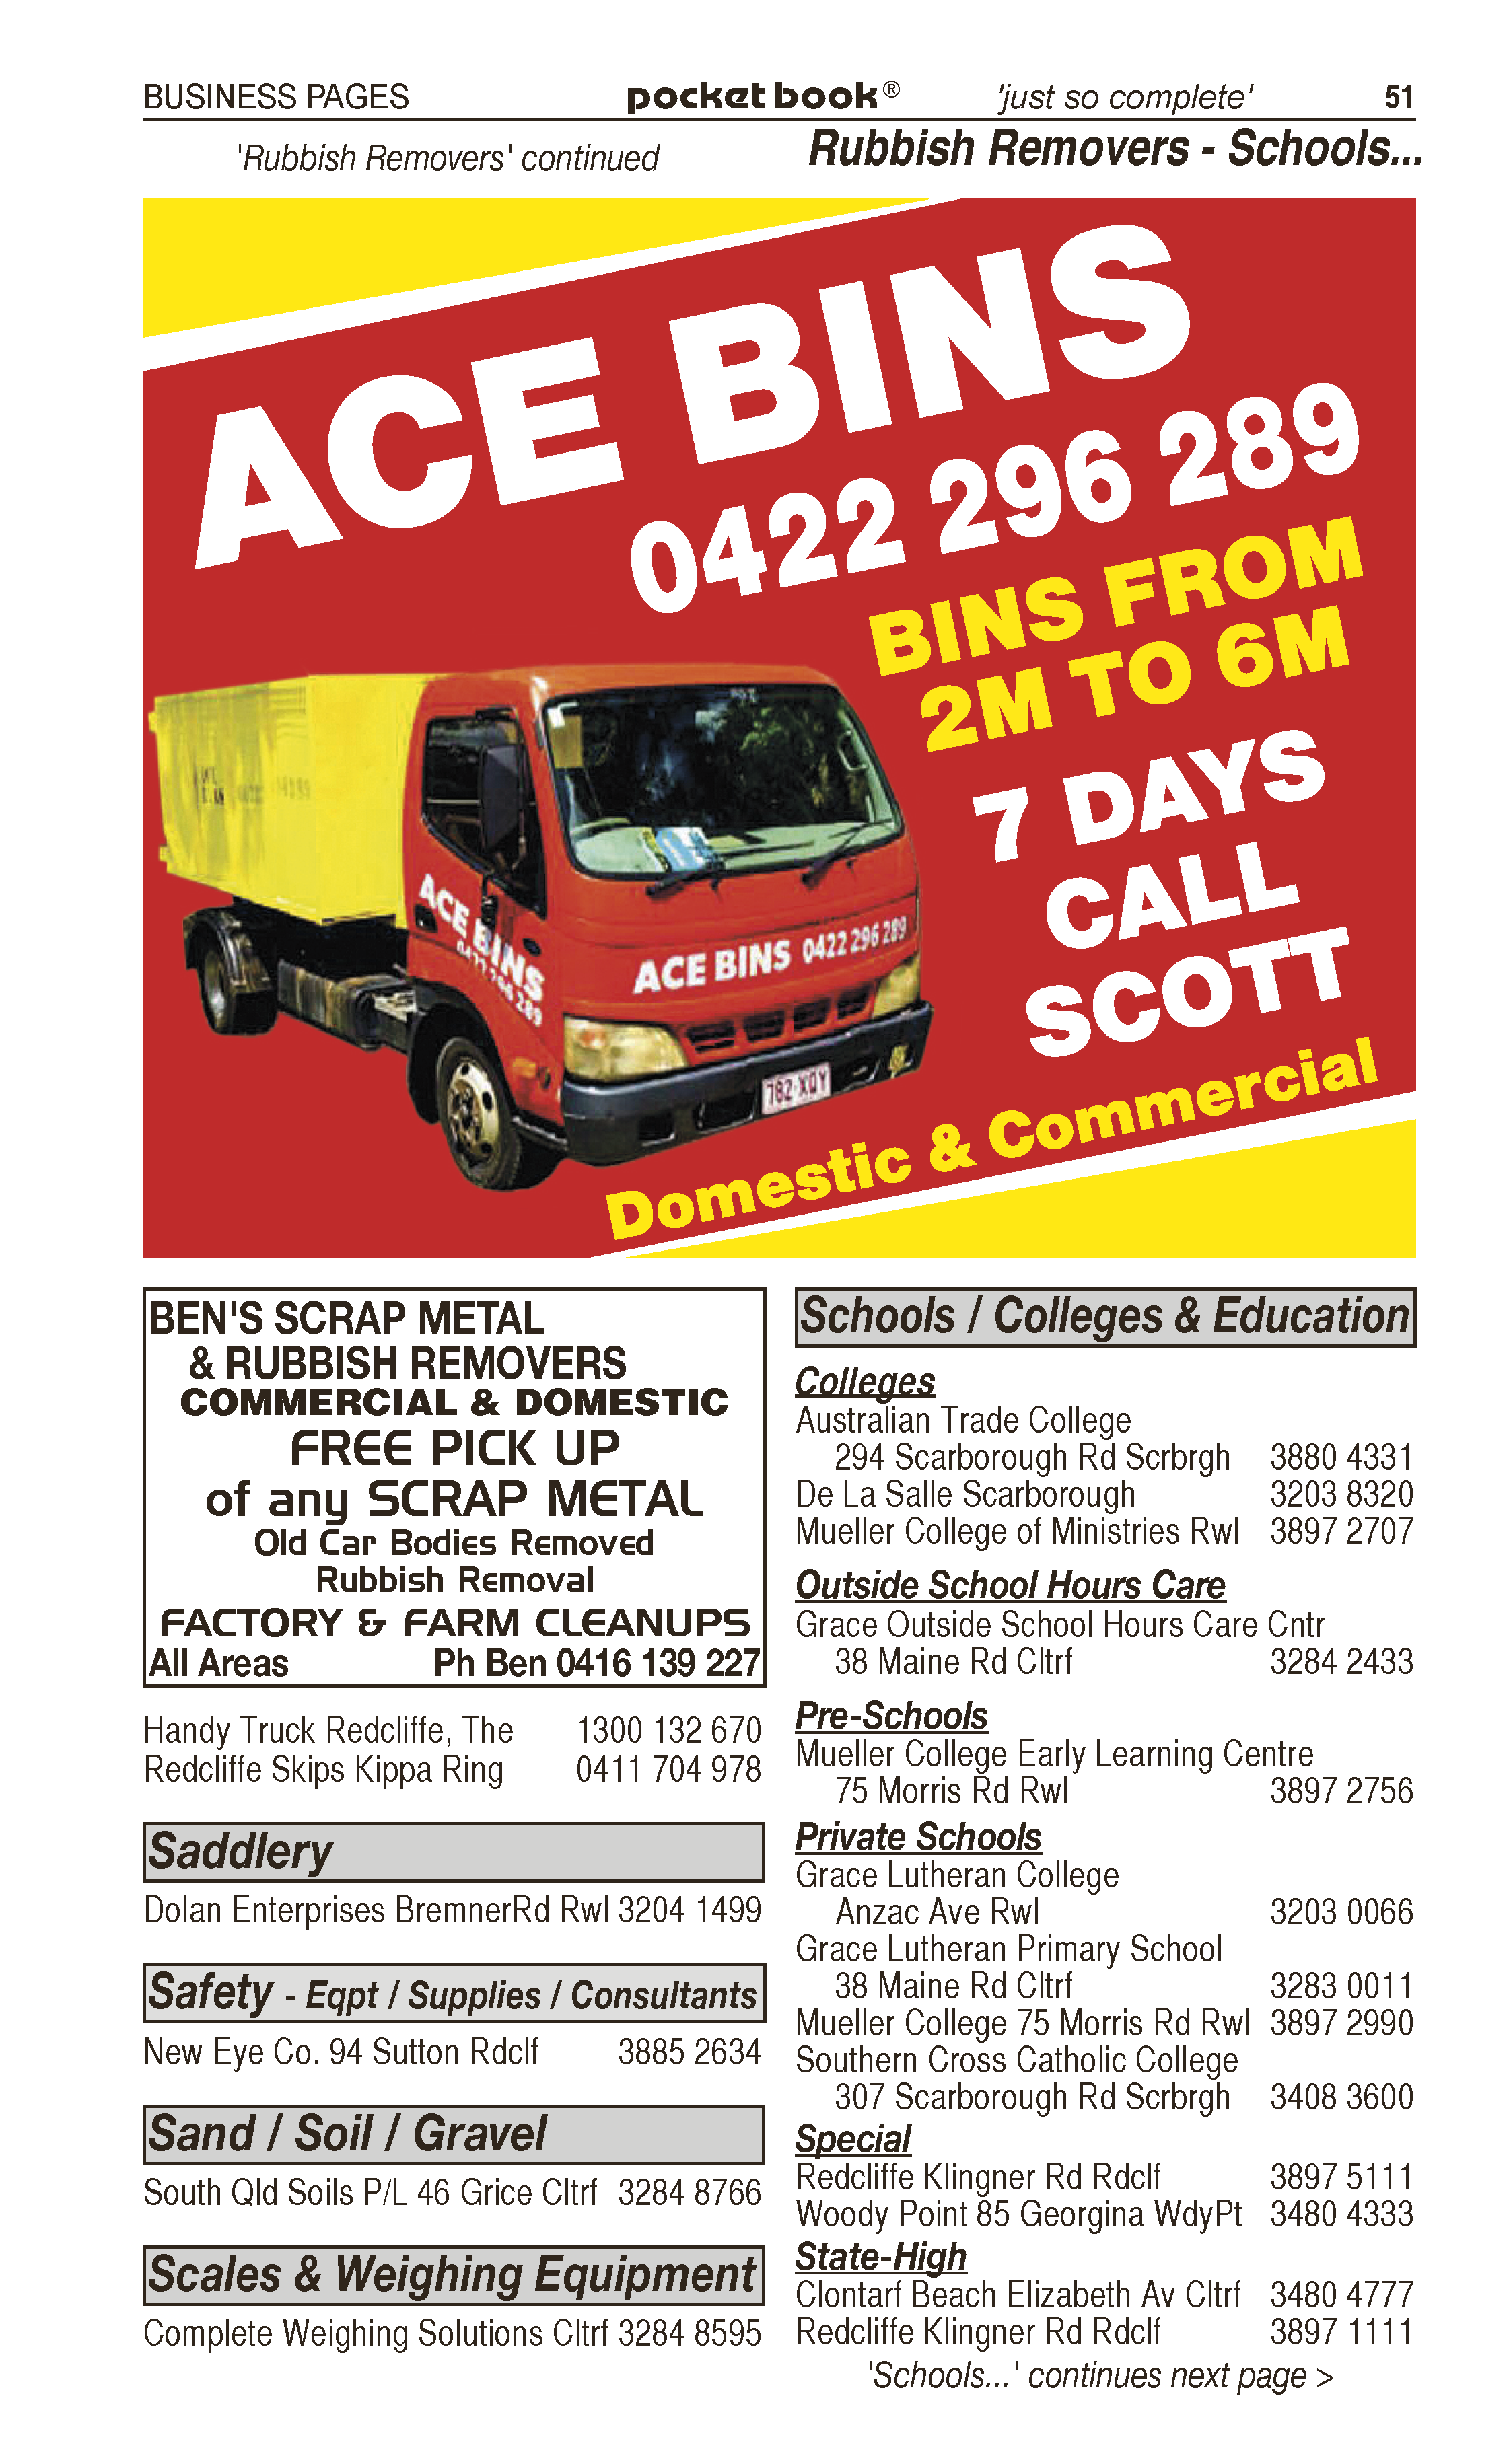 Ben's Scrap Metal & Rubbish Removal in Burpengary QLD - page 51